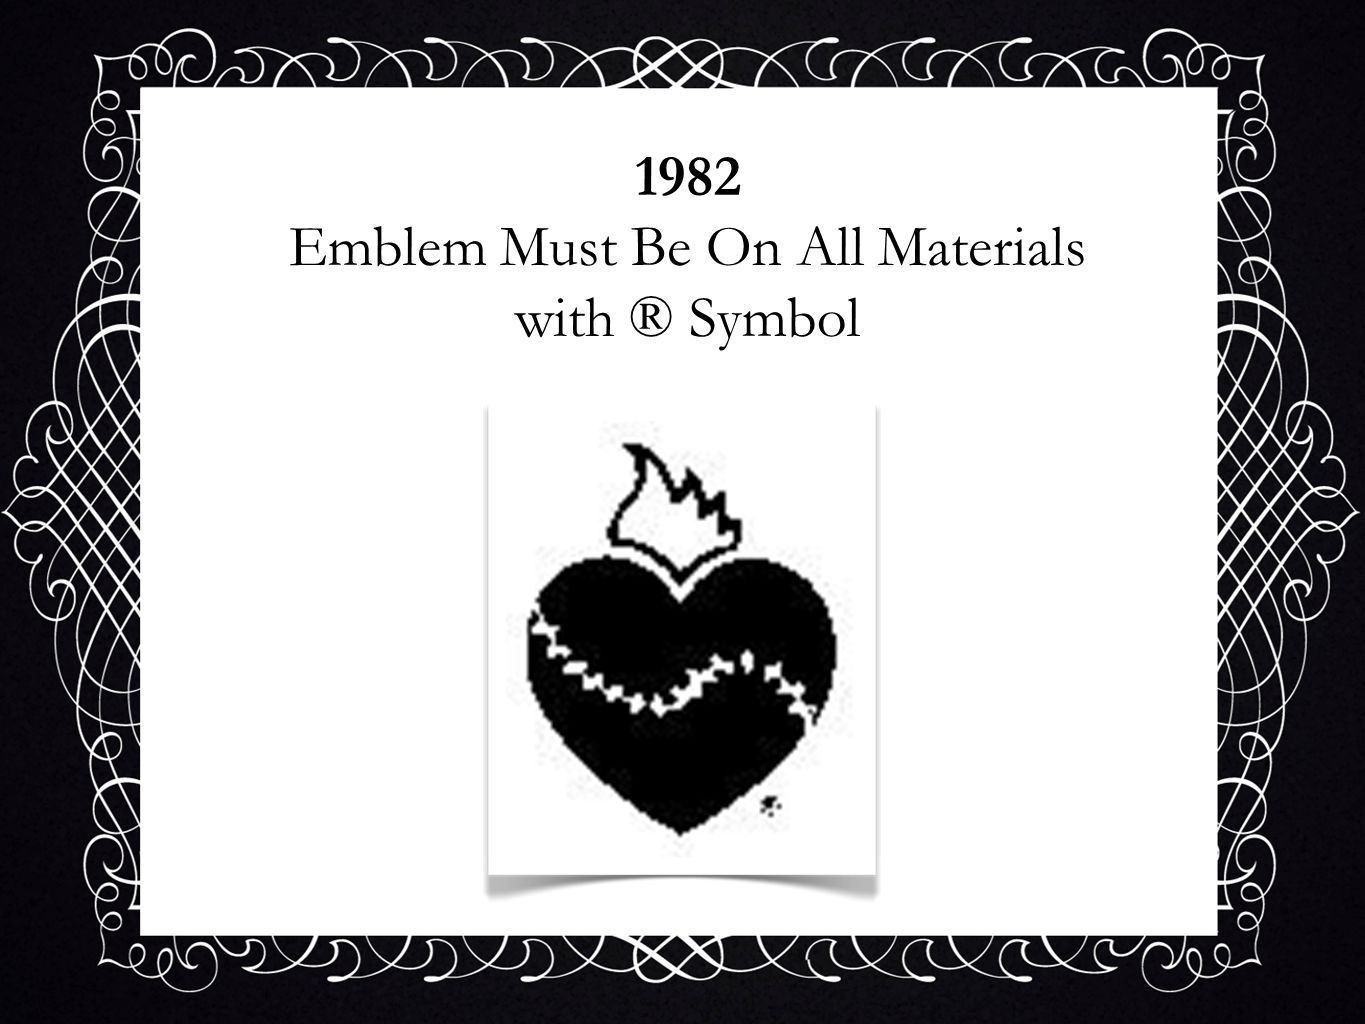 1982 Emblem Must Be On All Materials with ® Symbol